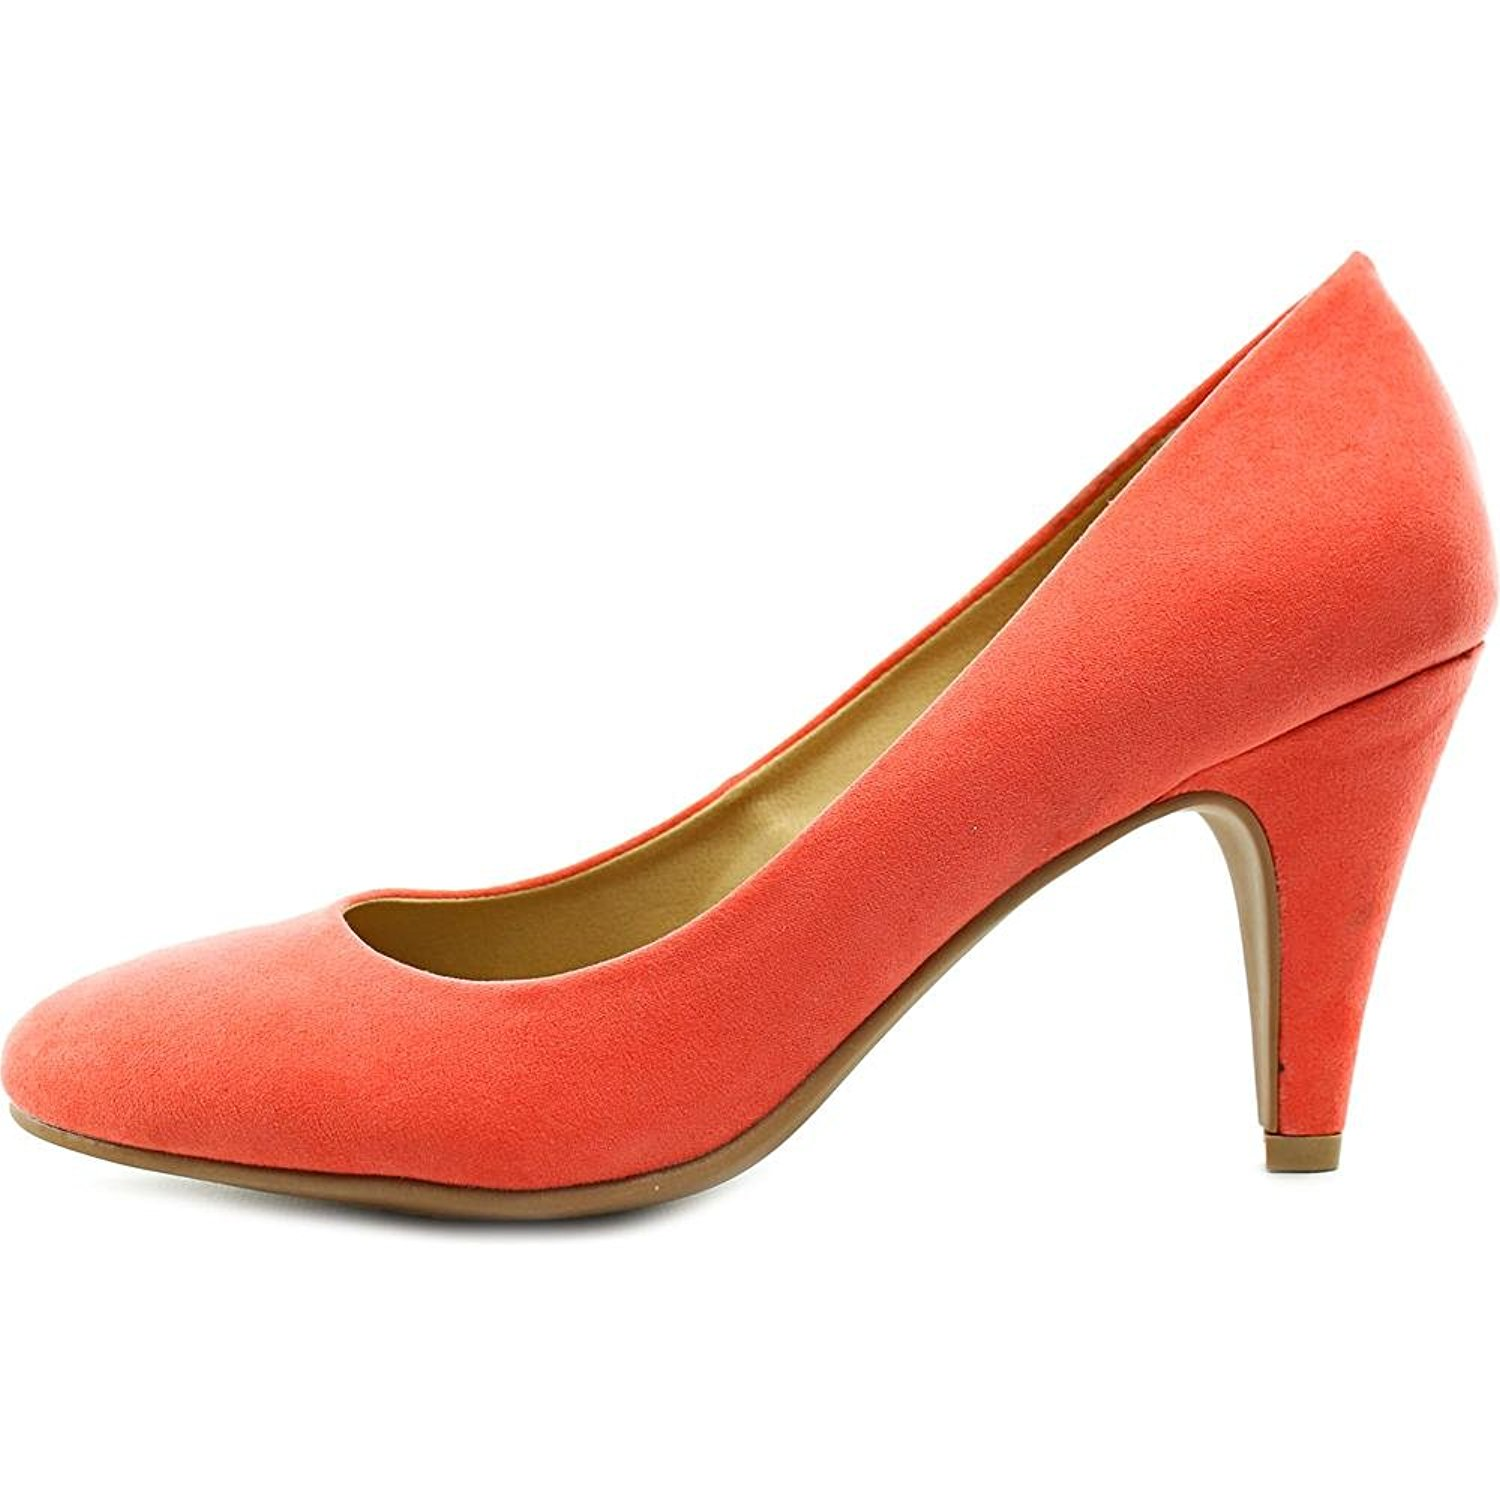 American Rag Womens Felix Round Toe Classic Pumps Coral Size 6.0